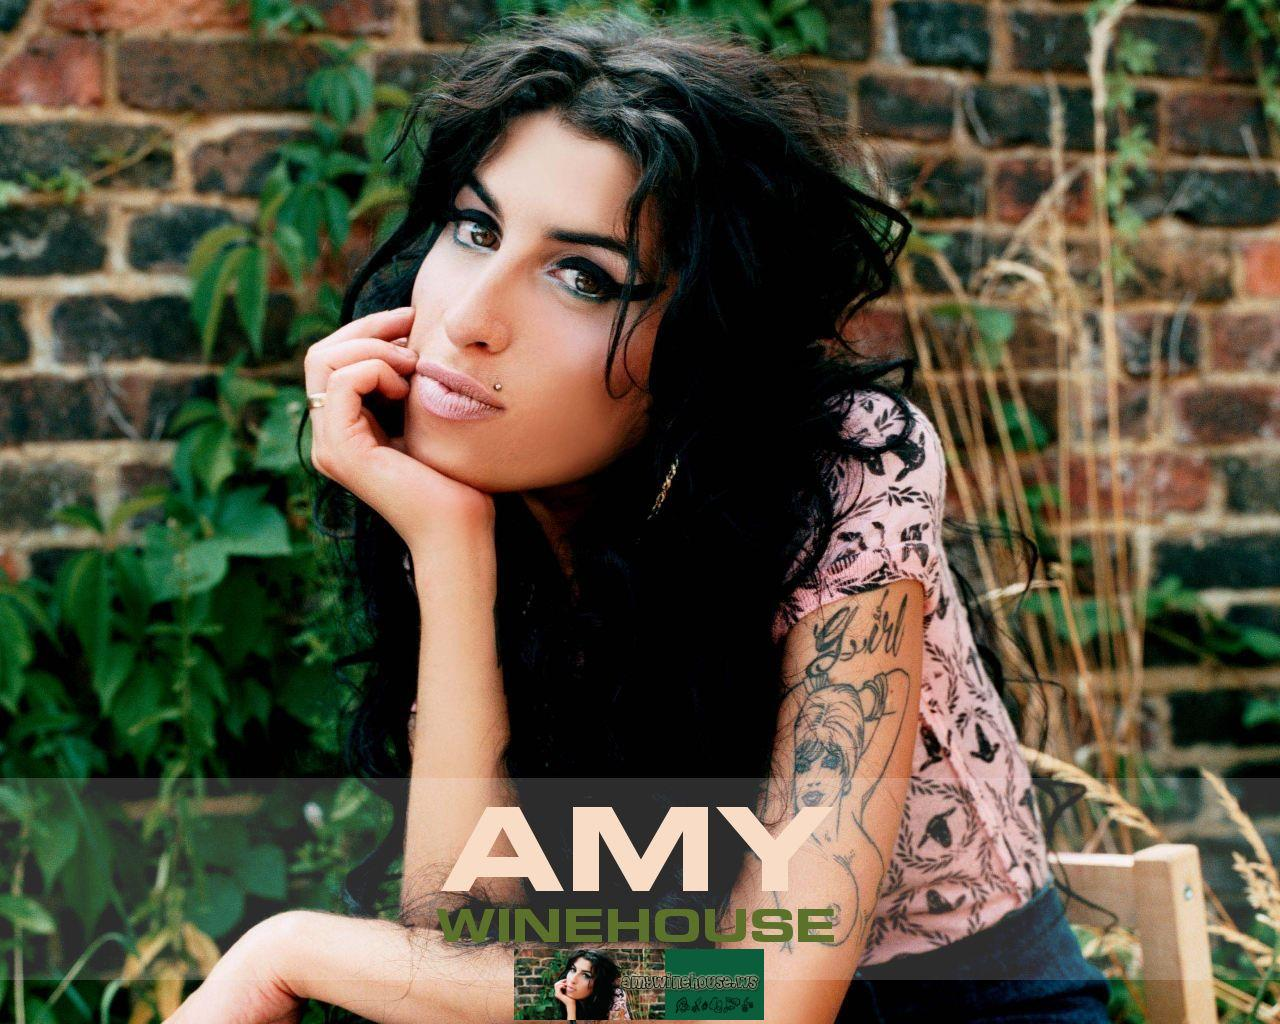 http://1.bp.blogspot.com/-5FB0mF4ffCk/TeTCZiRIYRI/AAAAAAAAAMI/EebmKHktSH8/s1600/amy-winehouse-wallpaper-1-big.jpg